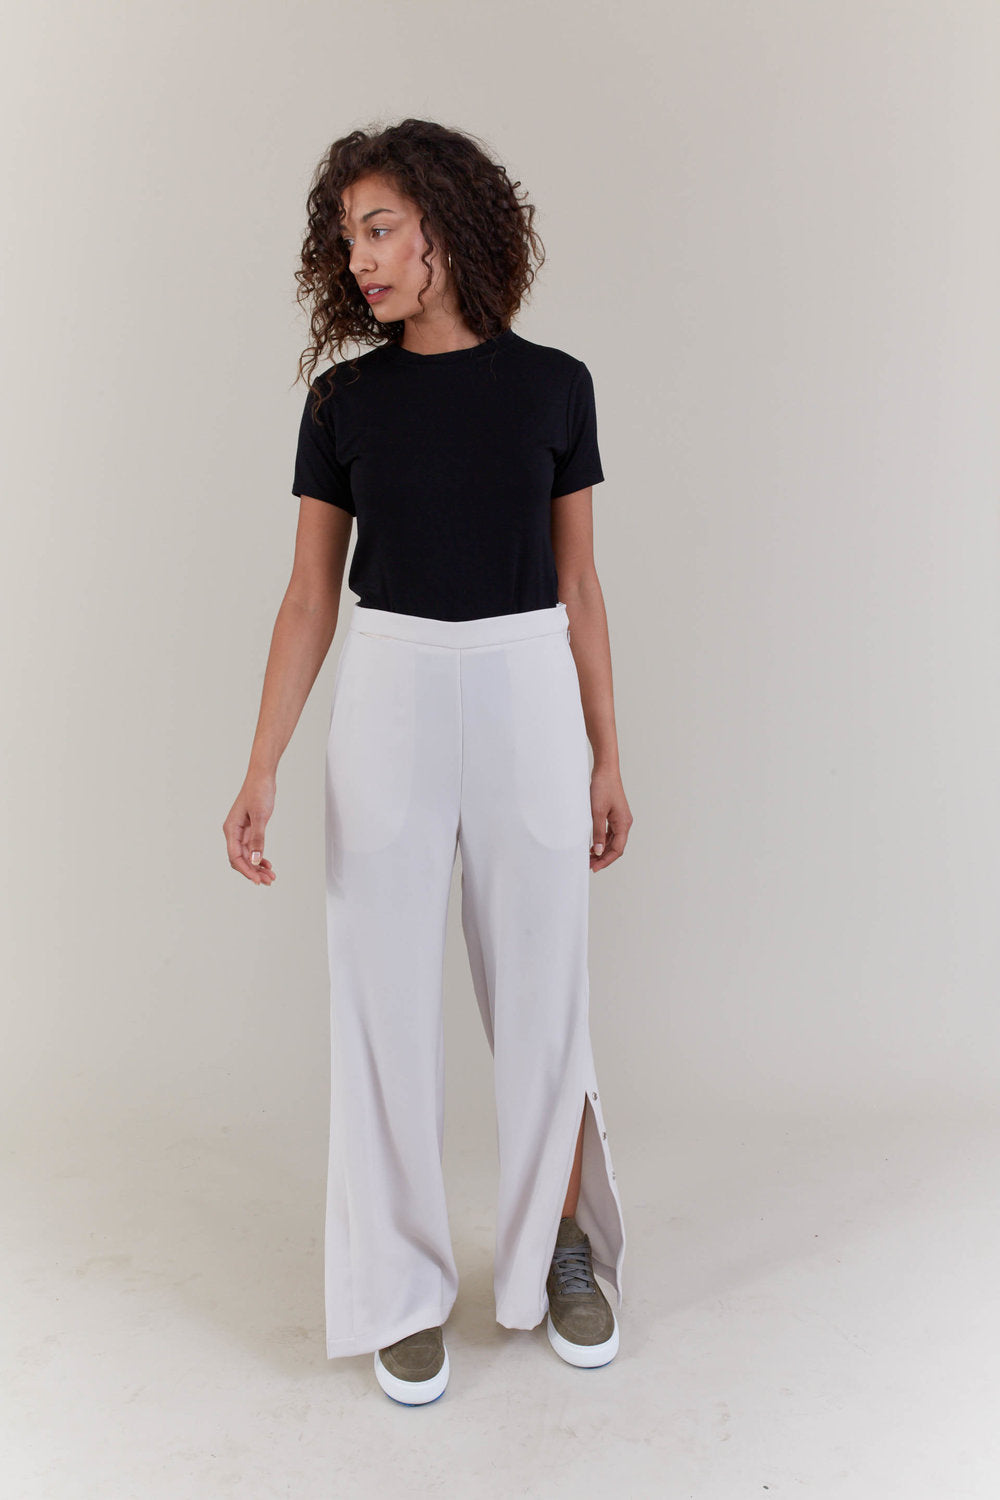 Shosh Ample Slit trouser in navy or bone found at PATRICIA in southern Pines, NC